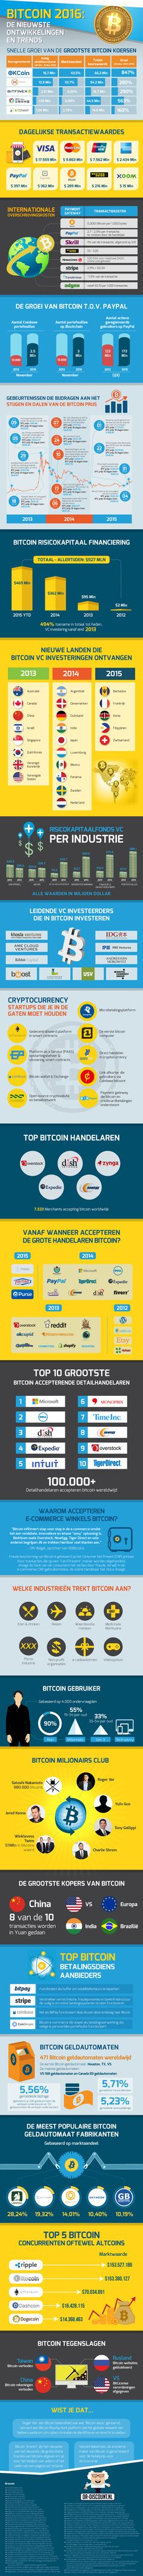 33 indicators suggesting the growth of Bitcoin in Cryptocurrency Bi Bitcoin cryptocurrency cryptocurrency analysis cryptocurrency backed by gold cryptocurrency list cryptocurrency prices finanzas forex Growth Indicators suggesting Banks, Climate Change Meaning, Finance, Bitcoin Mining Rigs, Satoshi Nakamoto, Bitcoin Value, Bitcoin Price, Bitcoin Business, Online Shops